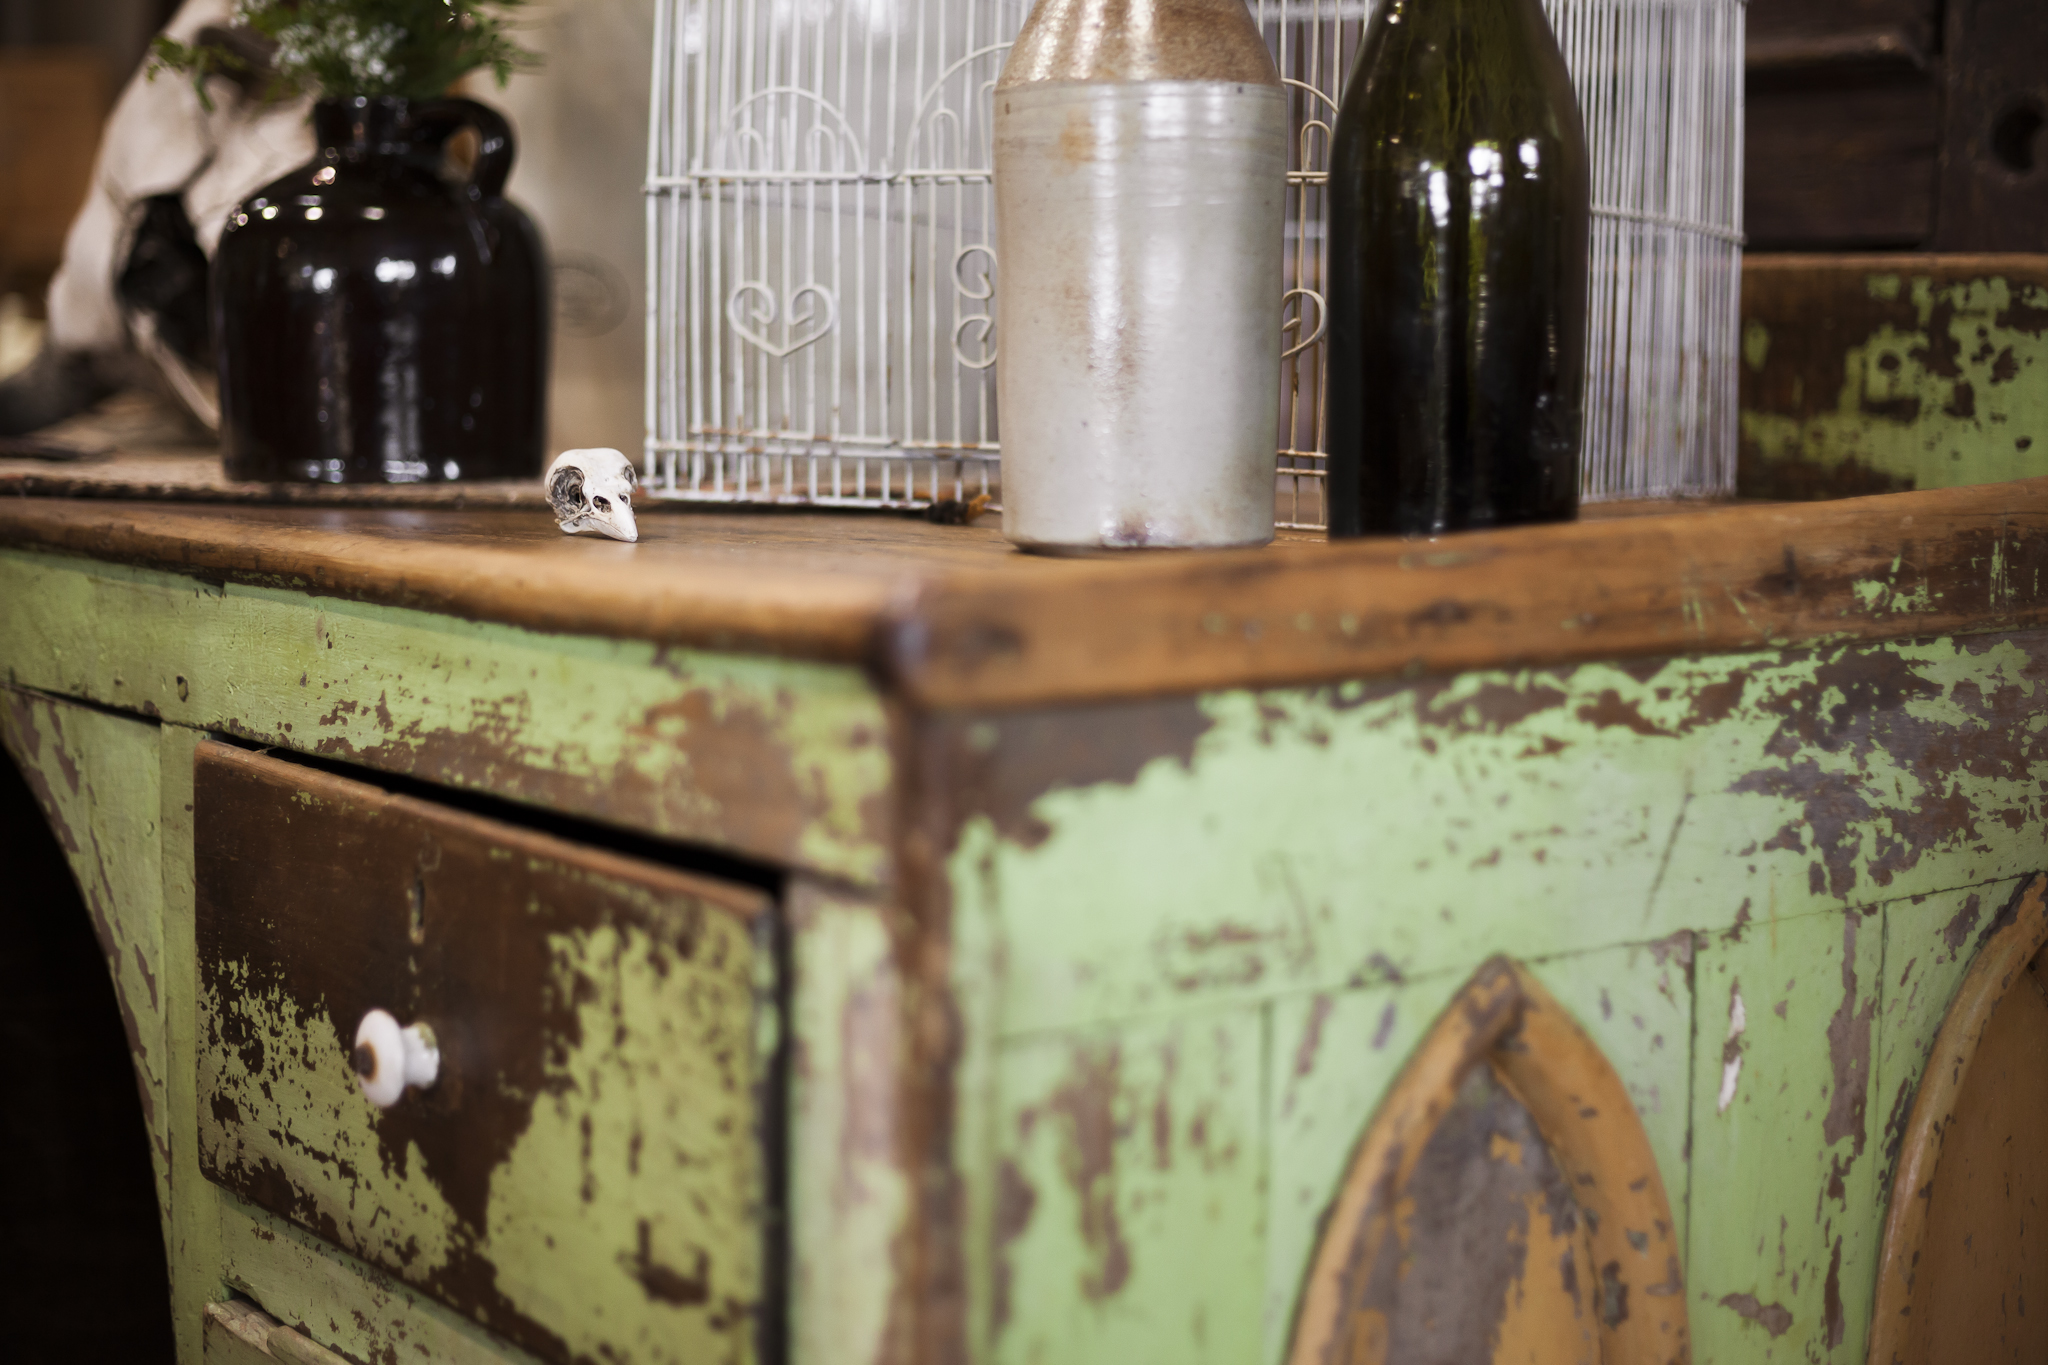 Aged Antique Desk with Milk Bottles, Baby Crow Skull and Birdcage On Top.